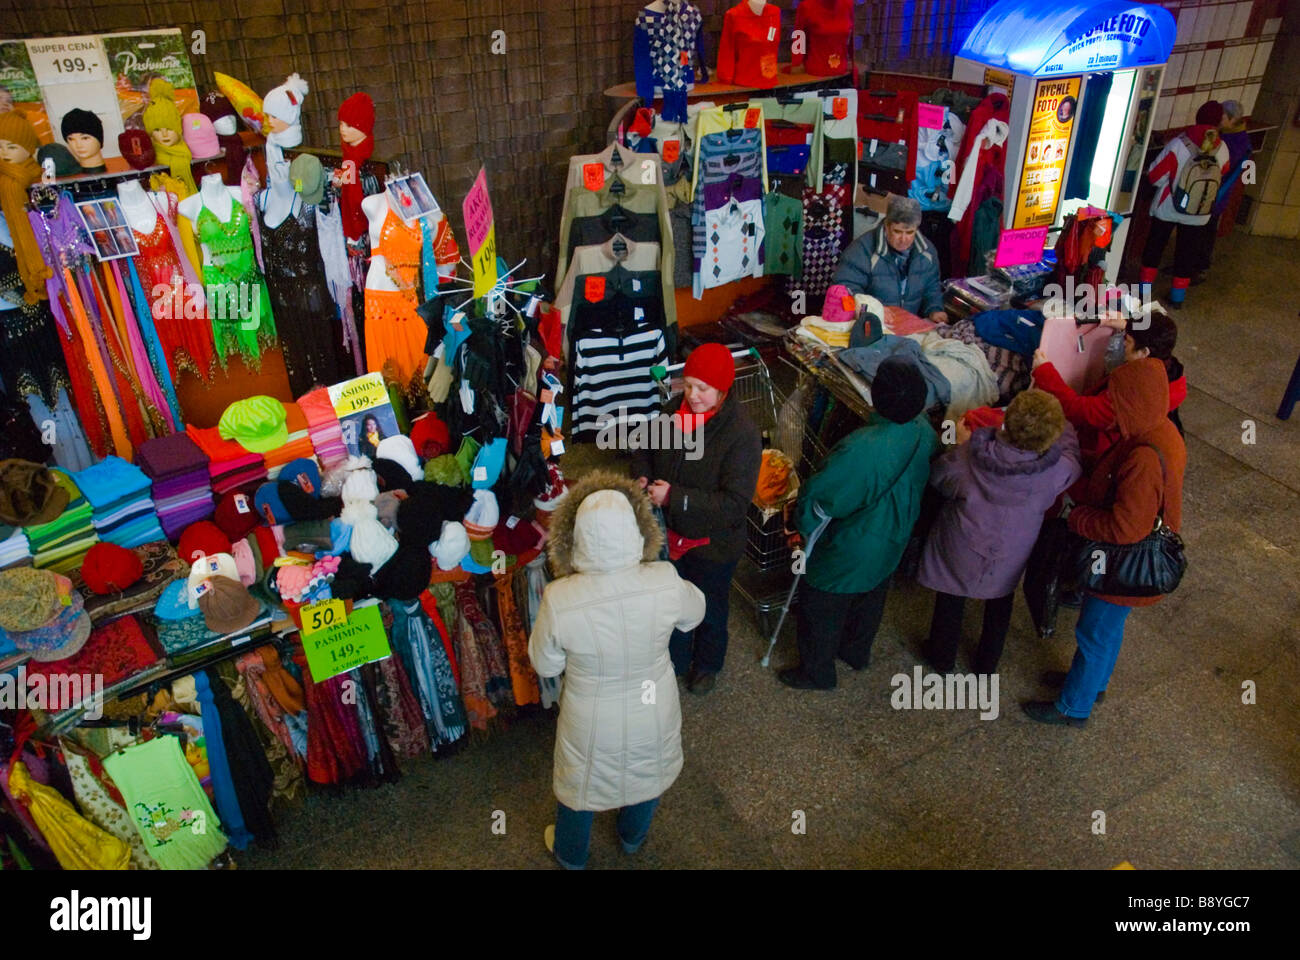 Stalls selling pashmina and other clothes and garments at Vltavska metro station in Prague Czech Republic Europe - Stock Image